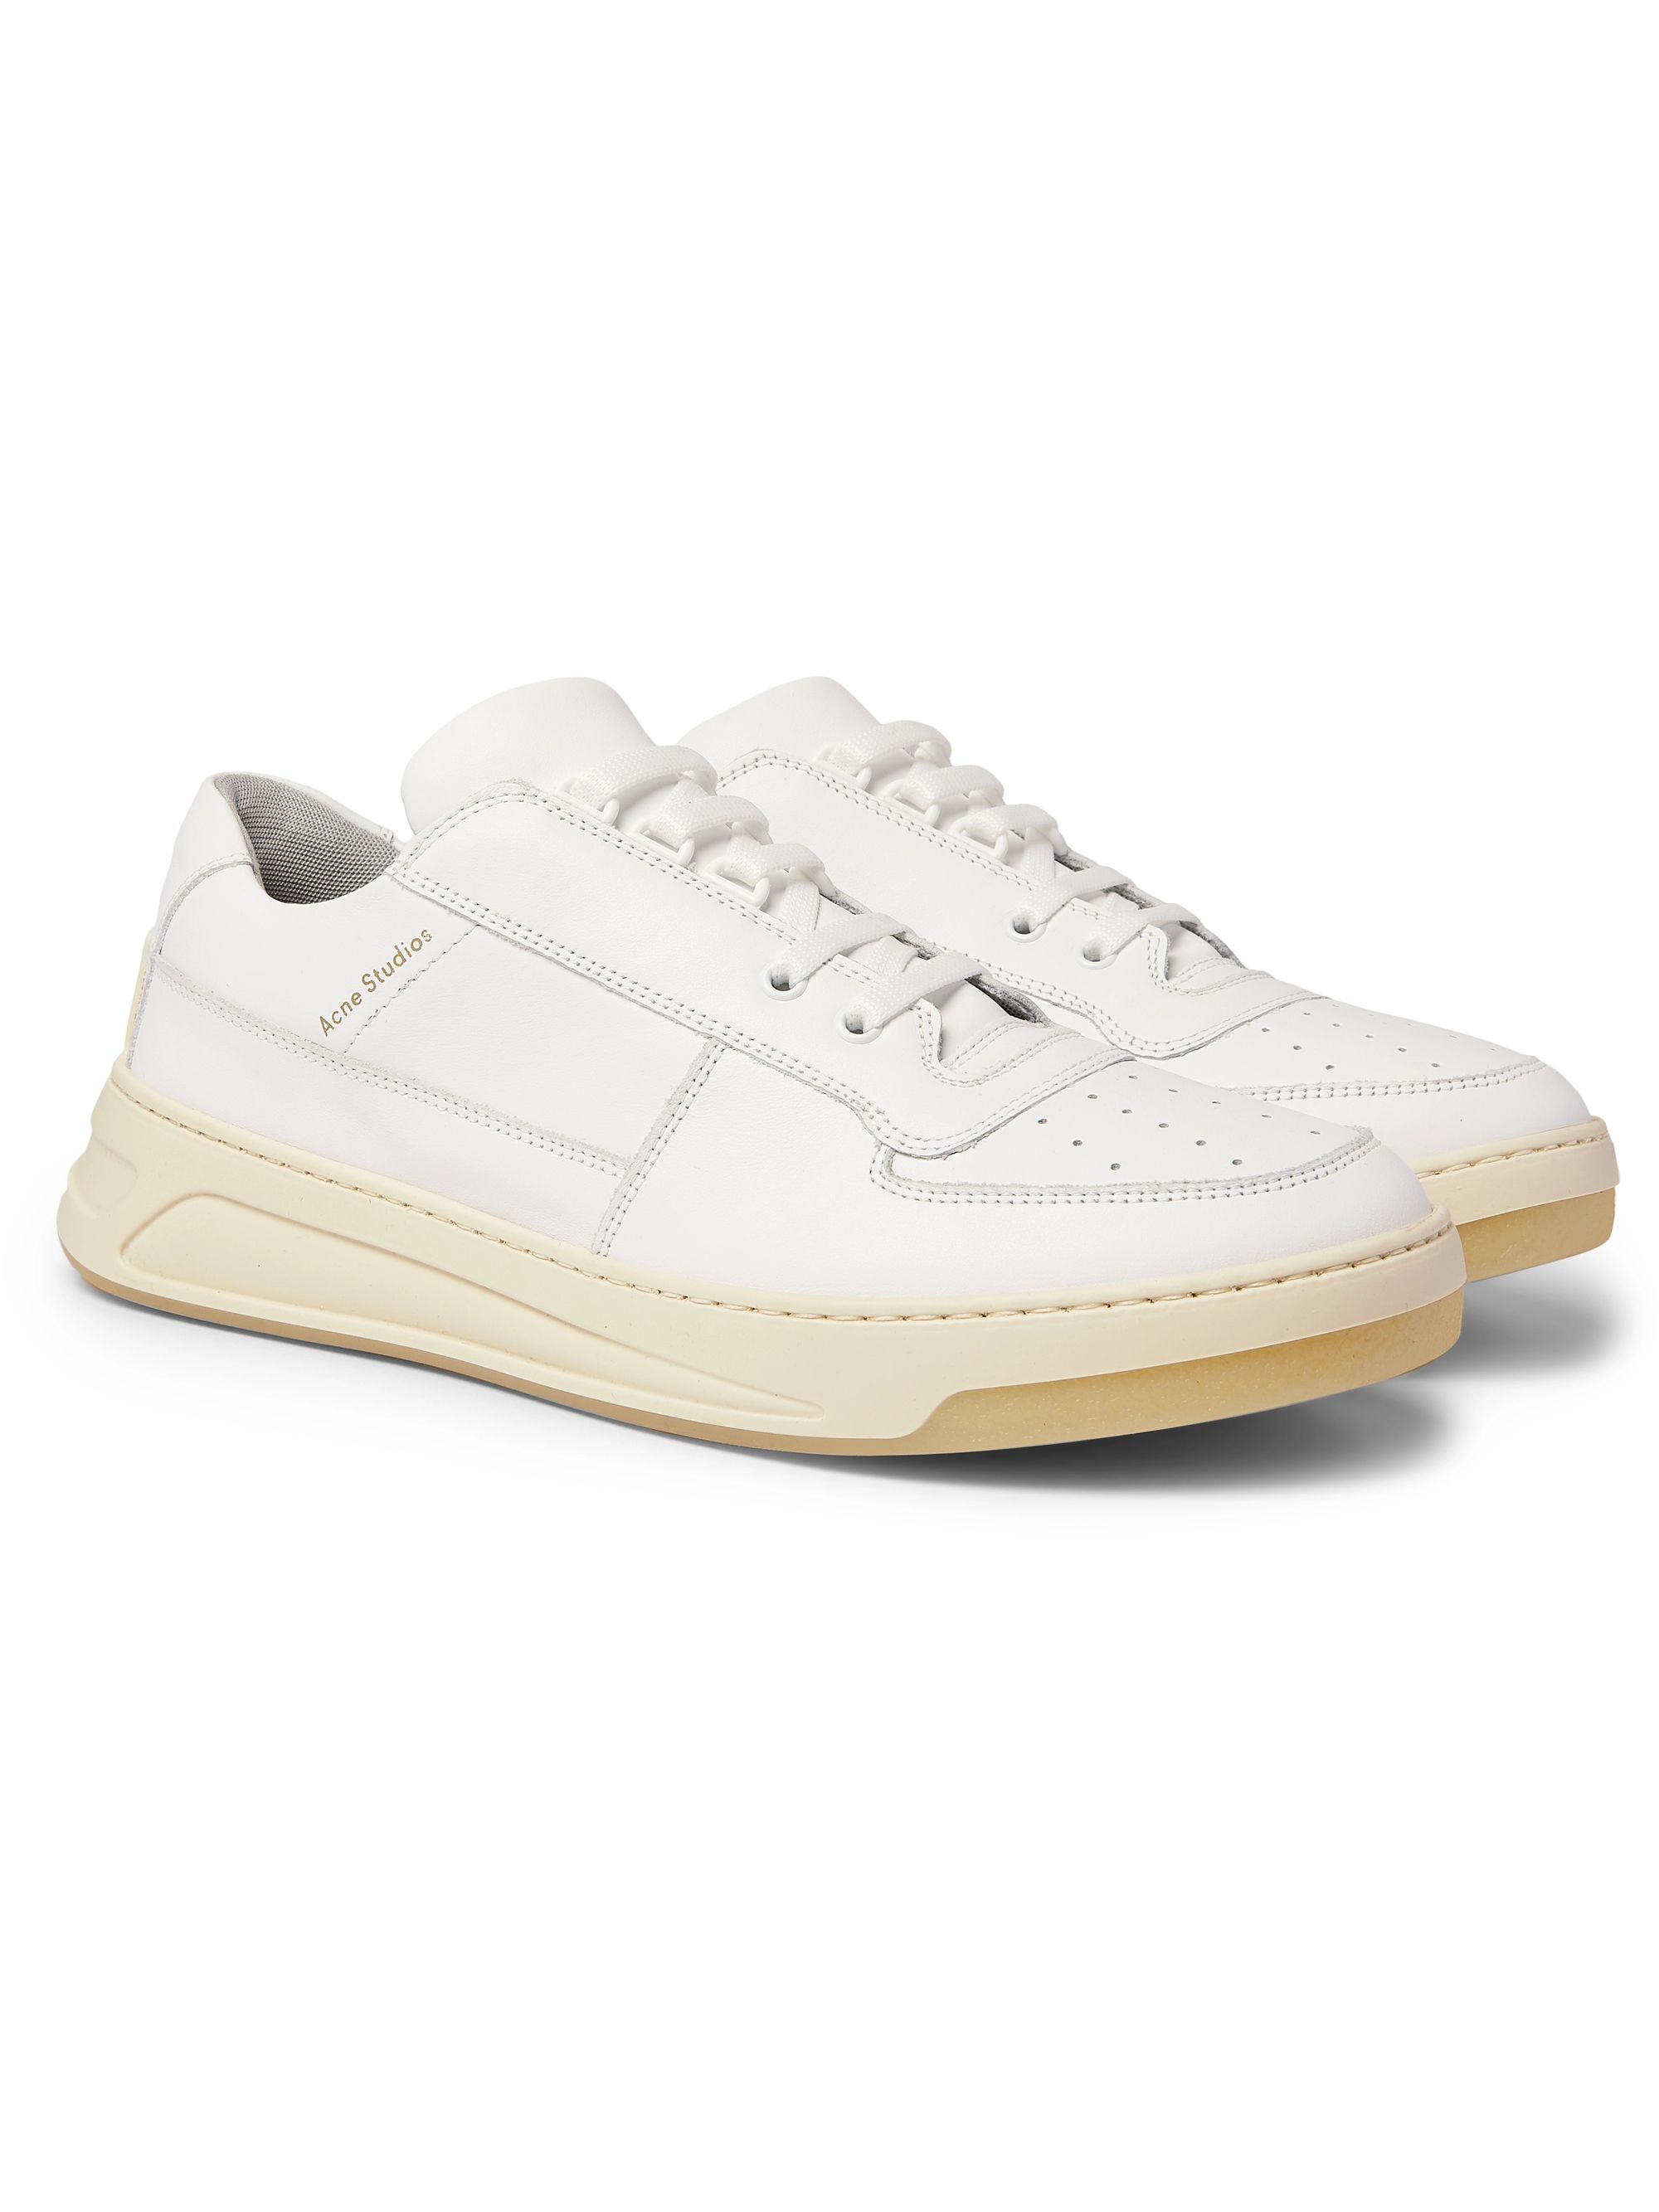 아크네 스튜디오 Acne Studios Leather Sneakers,White